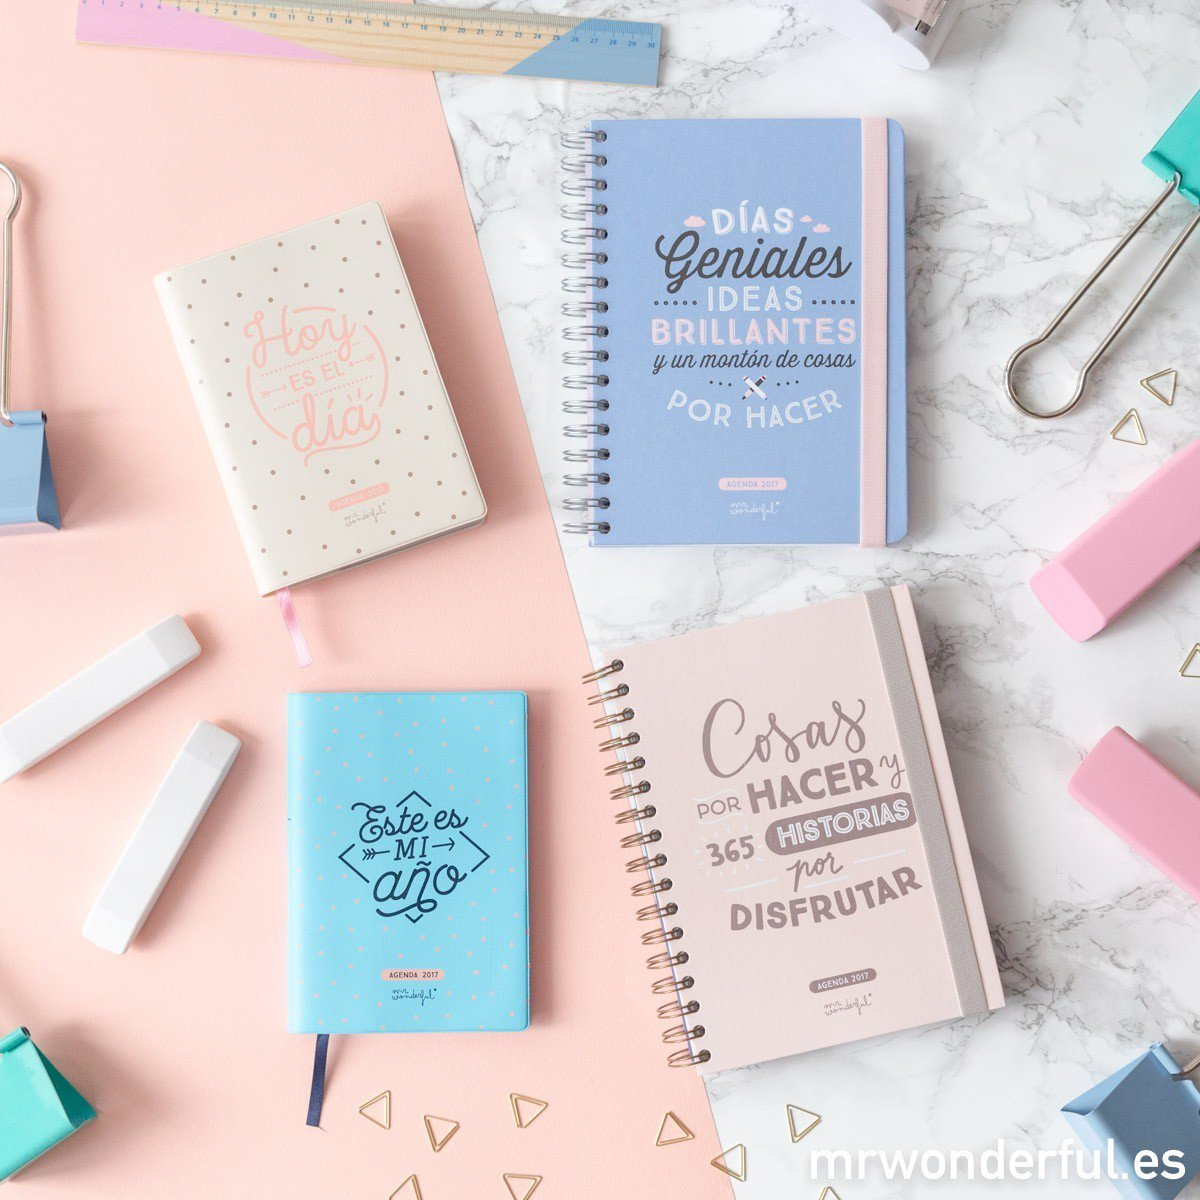 "Cosas De Mr Wonderful Mr. Wonderful On Twitter: ""¿truco O #agendawonder? ¡agenda"